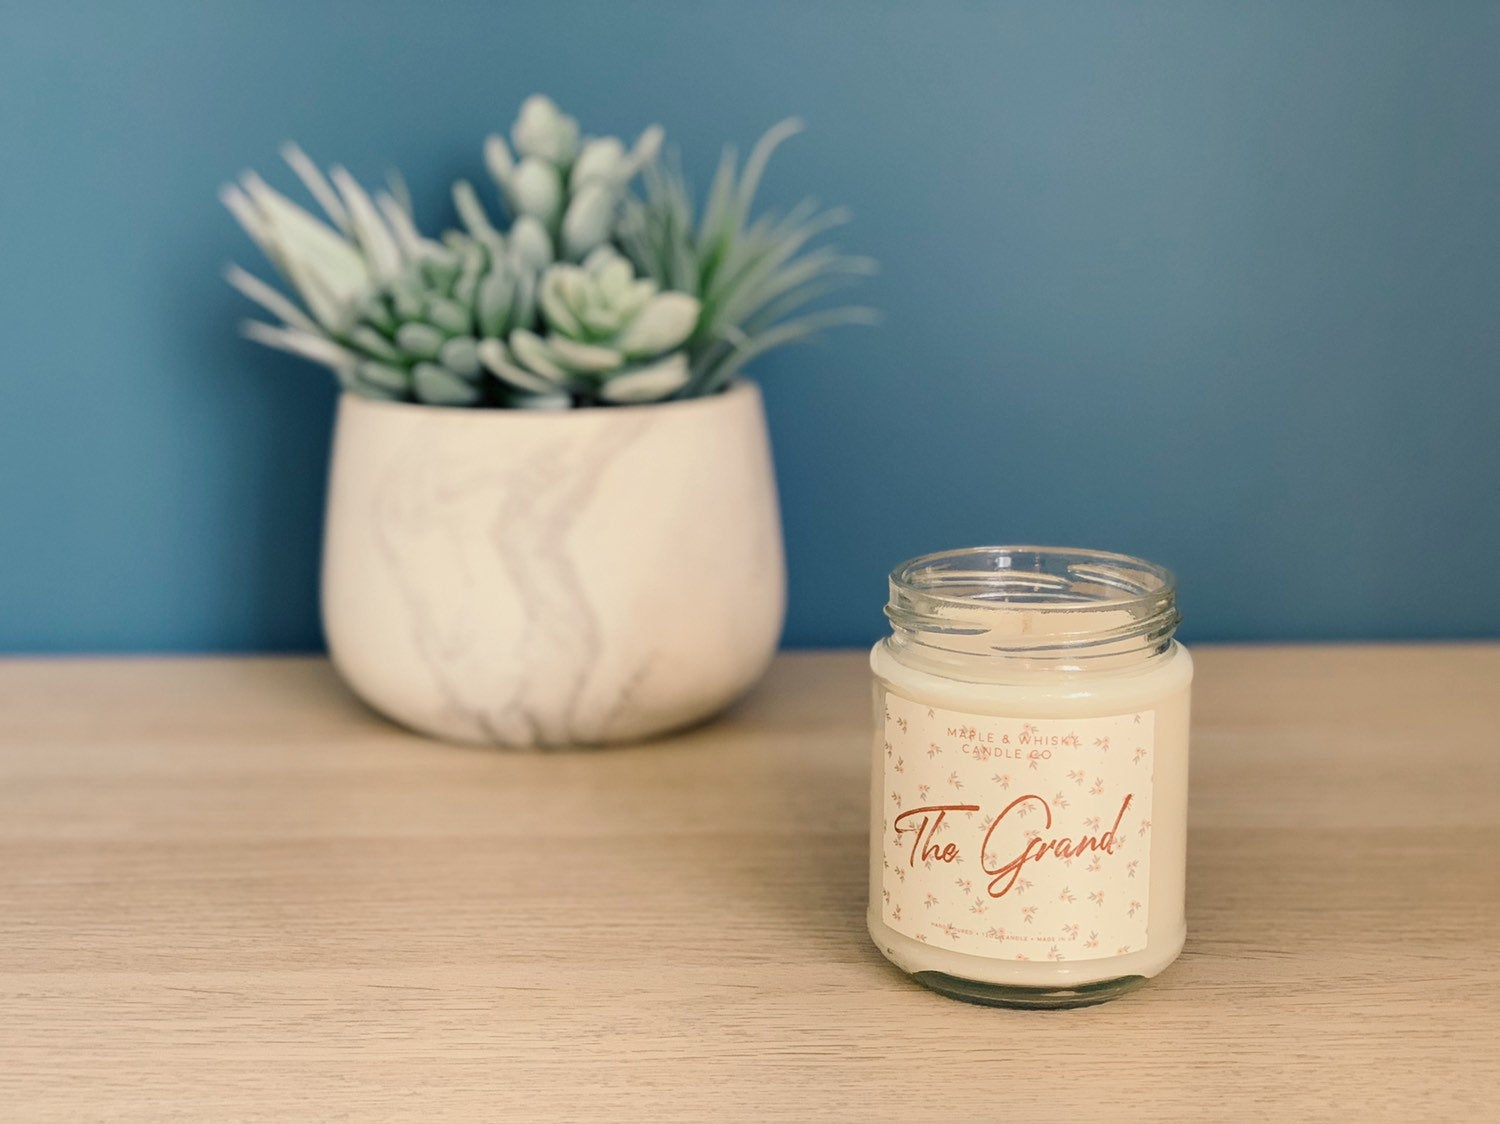 The Grand - Jar Candle